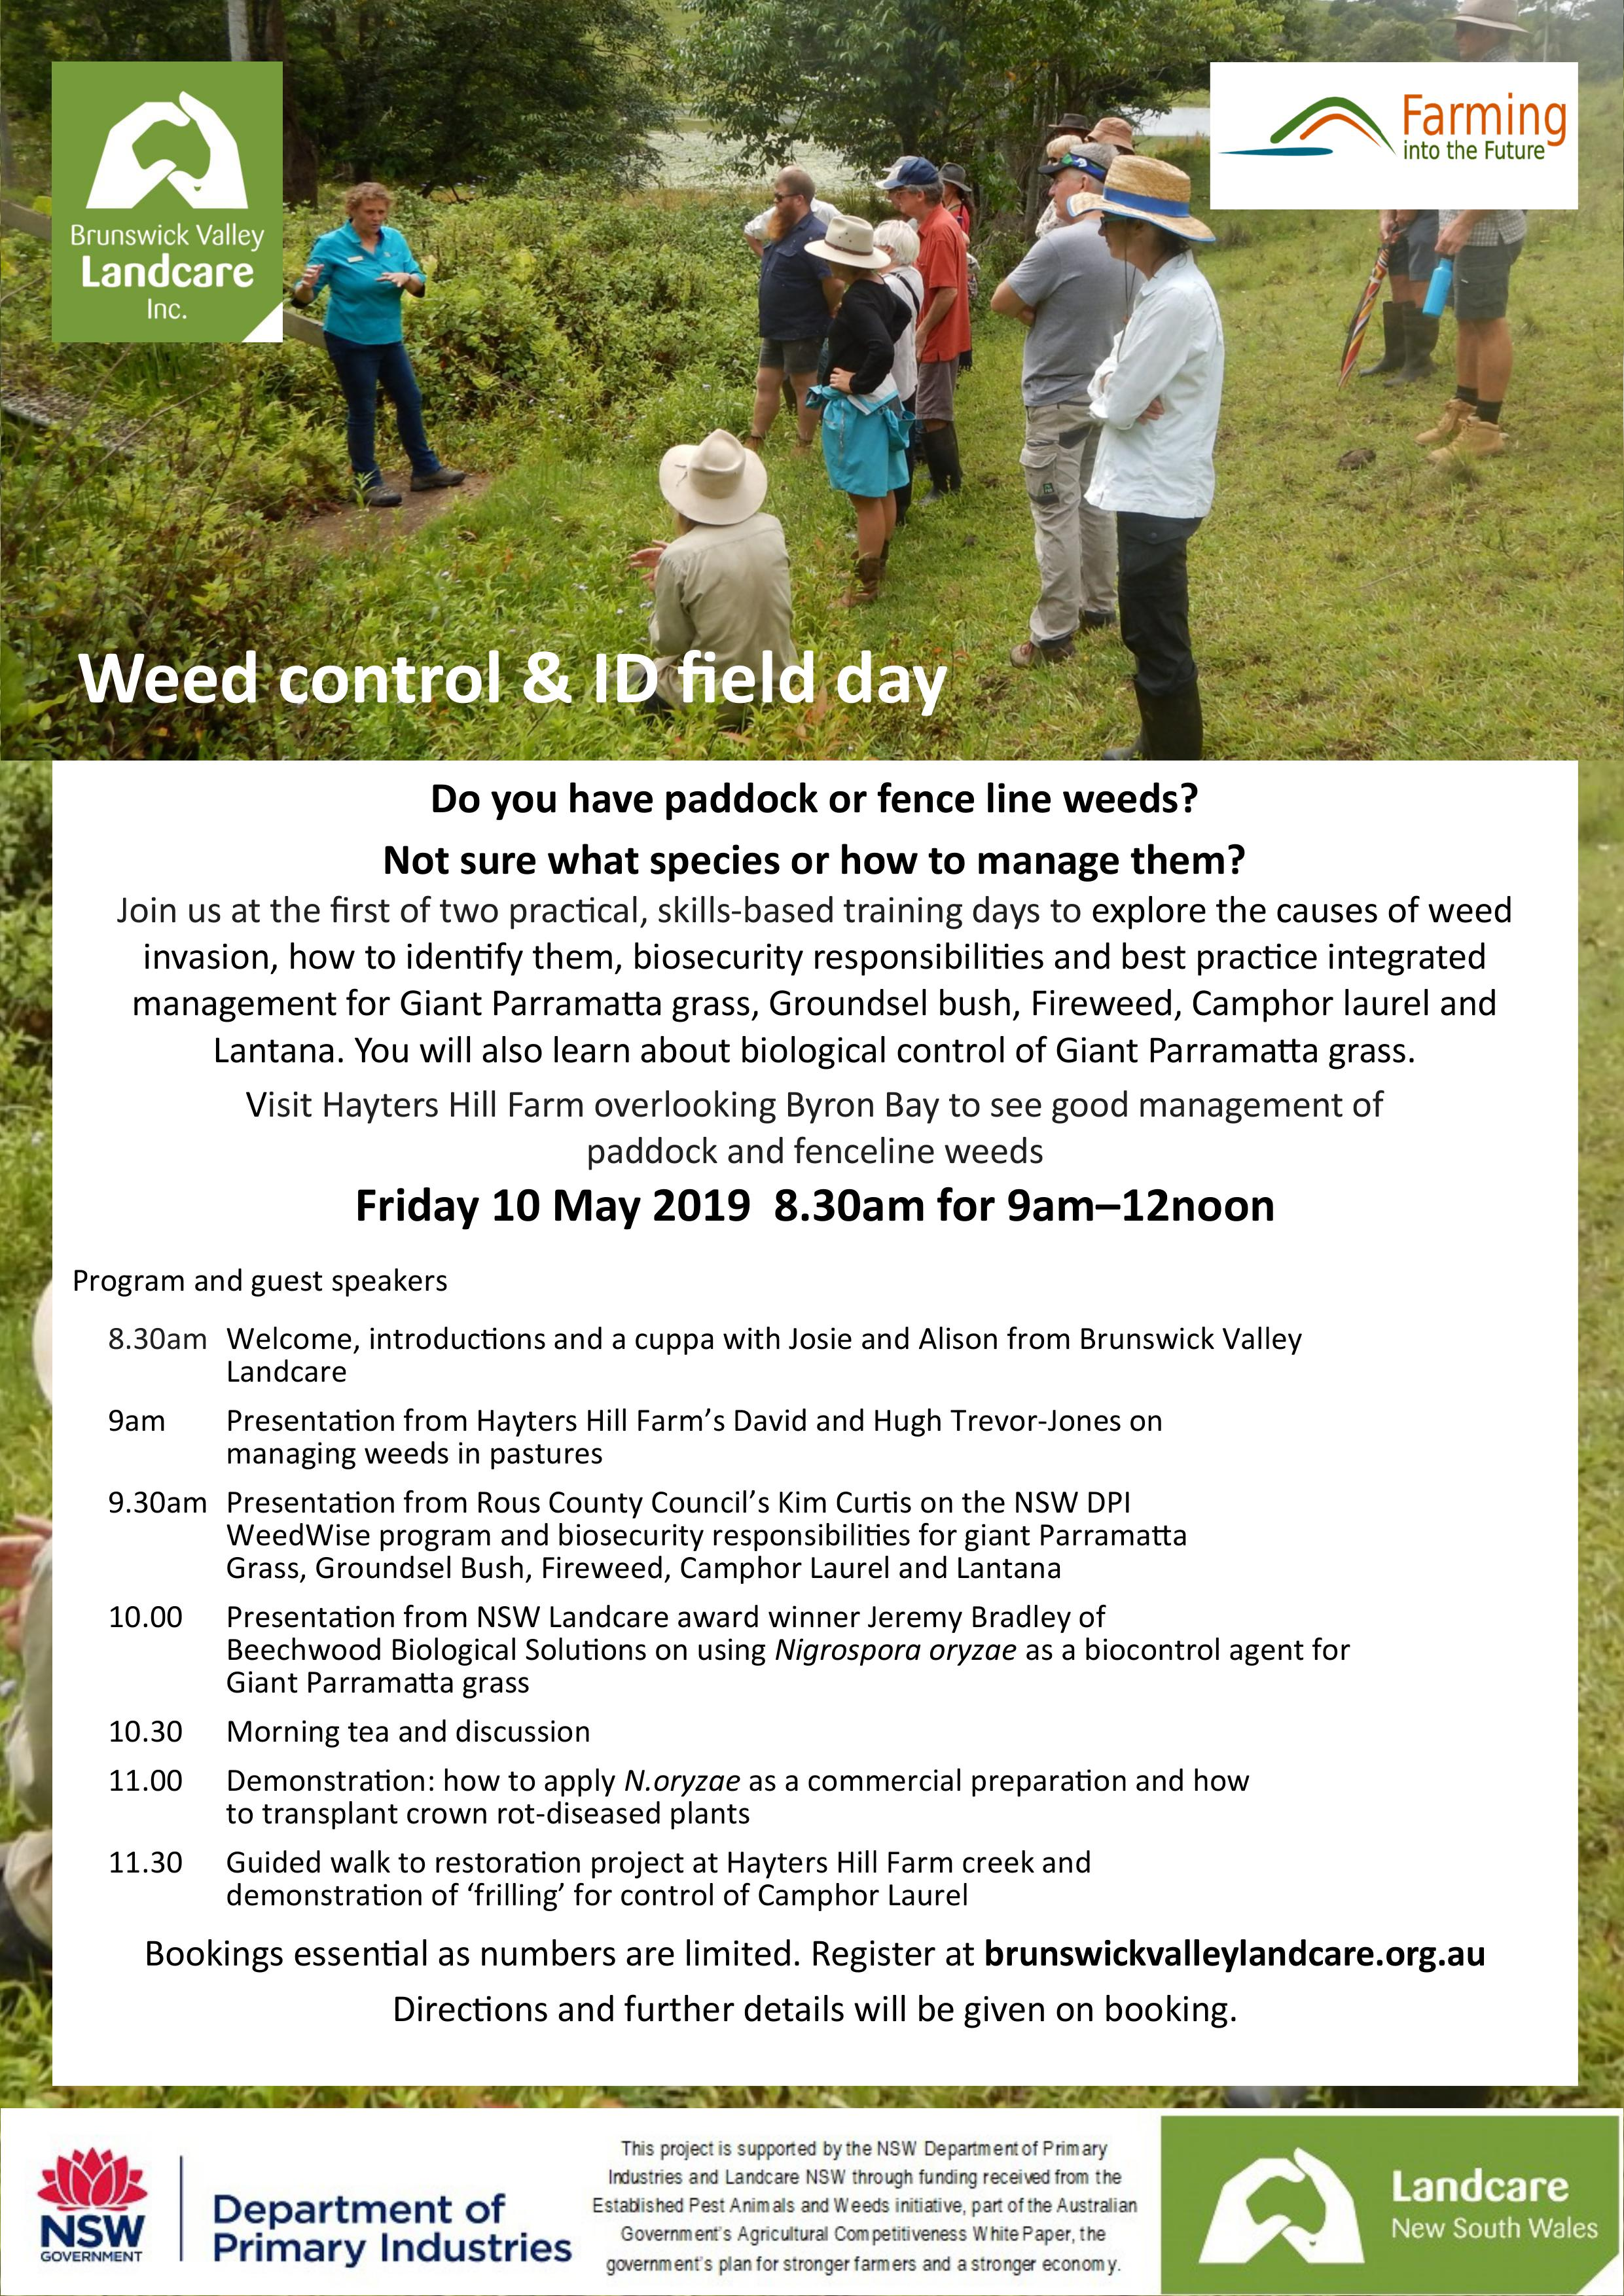 Weed control & ID field day flyer